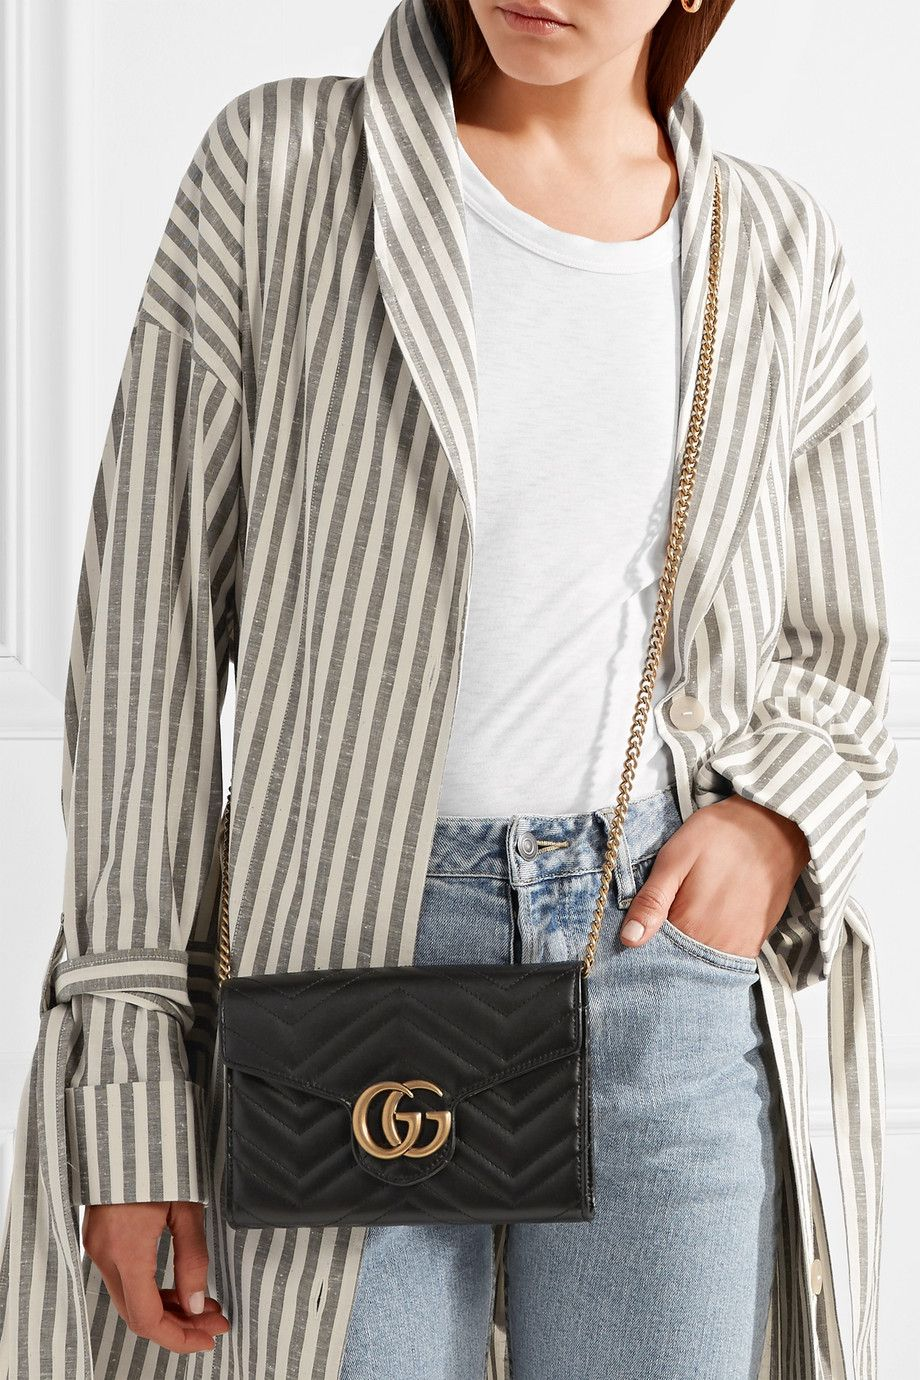 e2fb2cf2ccb8ca GG Marmont mini quilted leather shoulder bag #fashion #pandafashion #clutch  #gucci